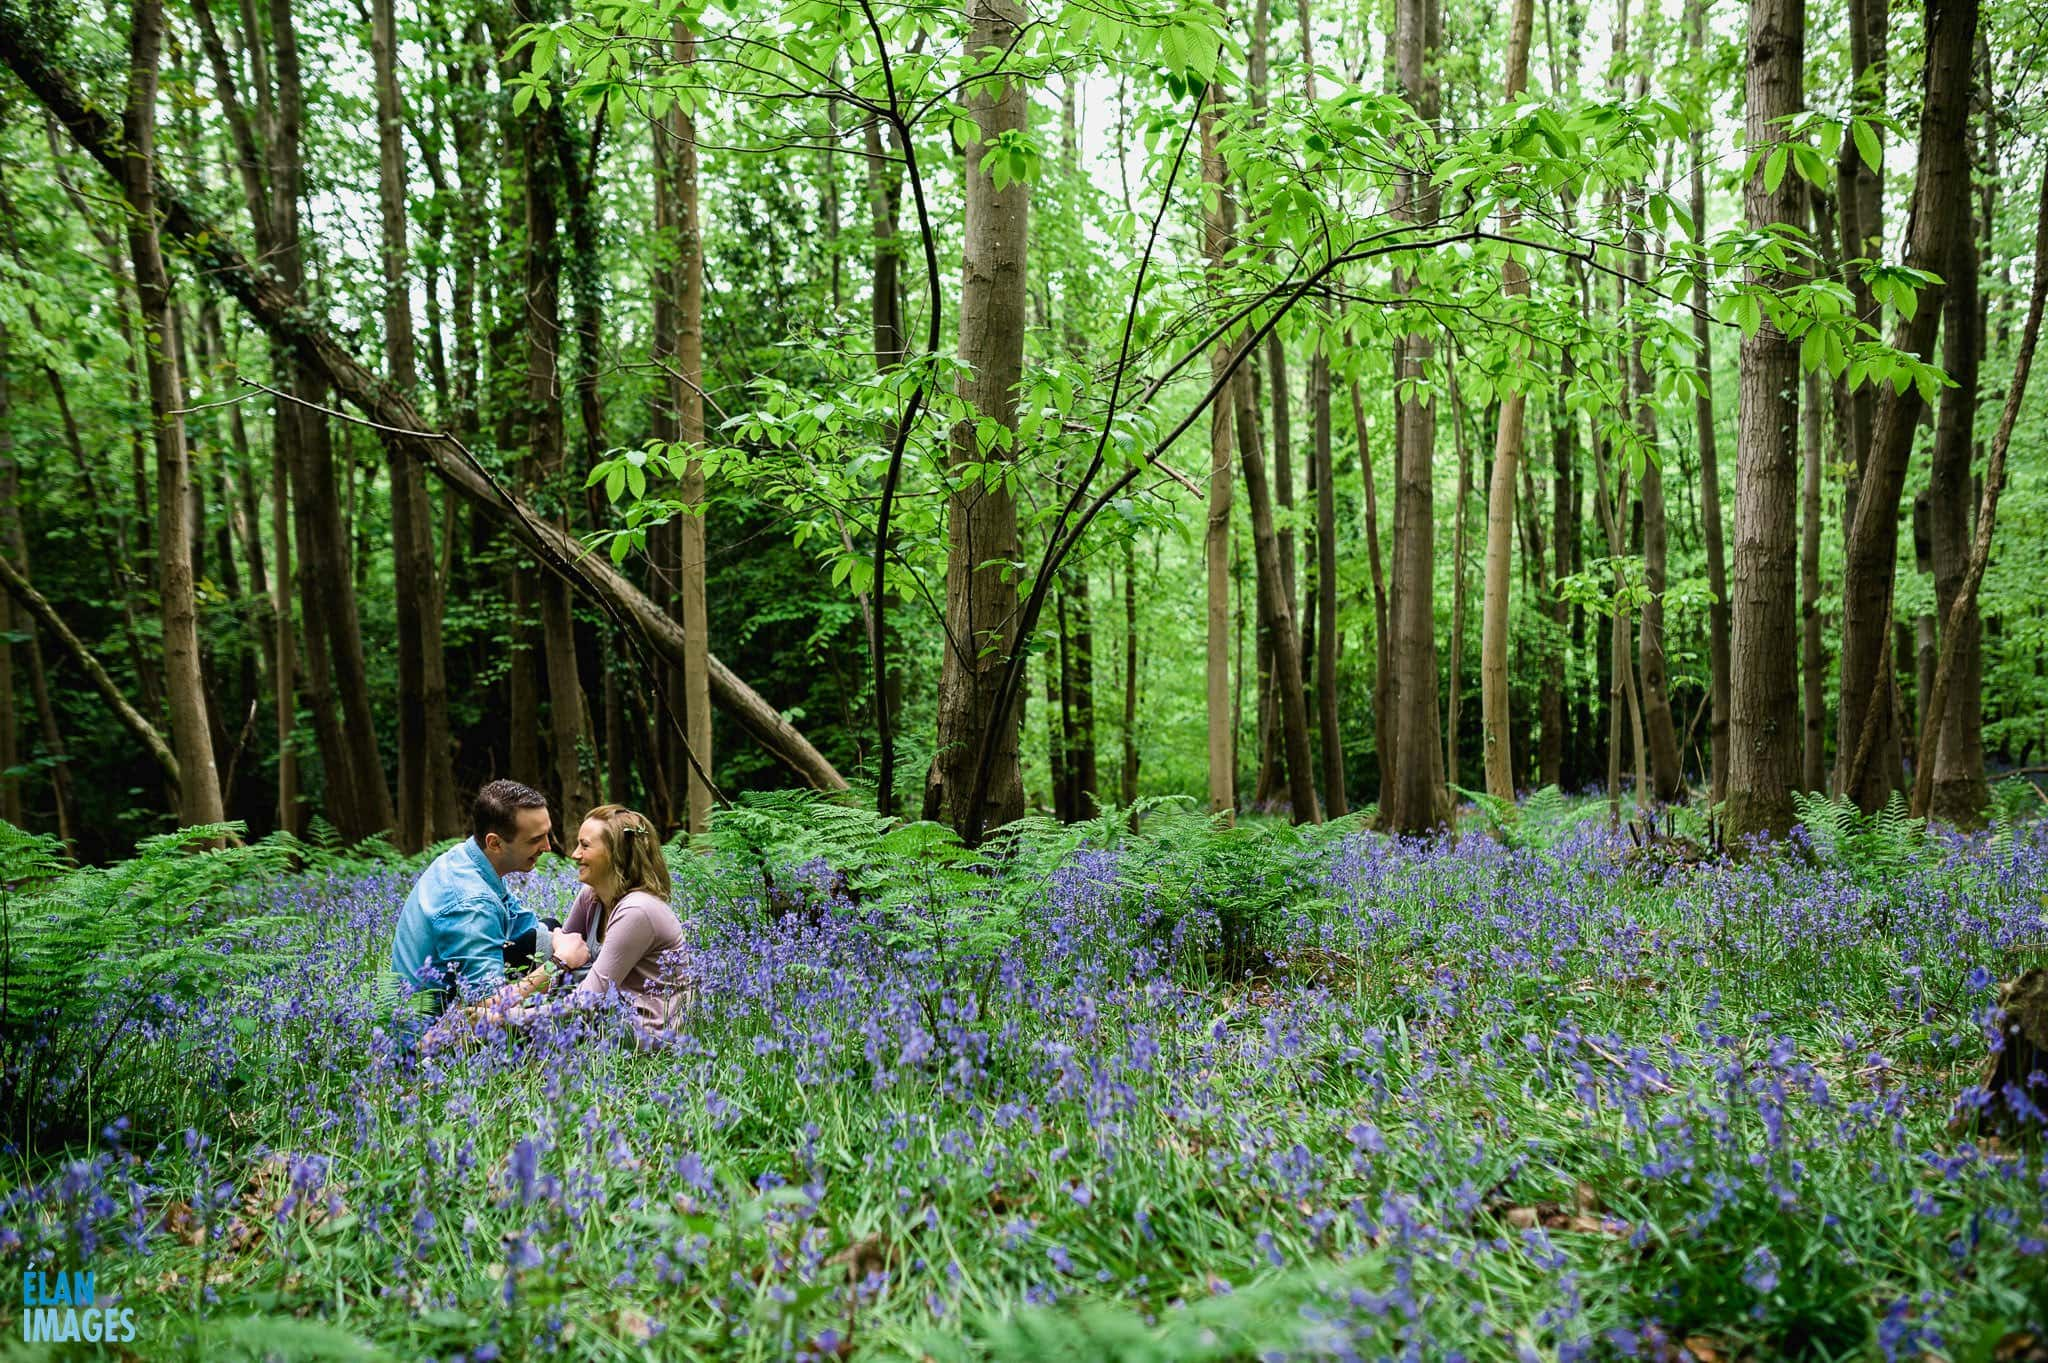 Engagement Photo Shoot in the Bluebell Woods near Bristol 17